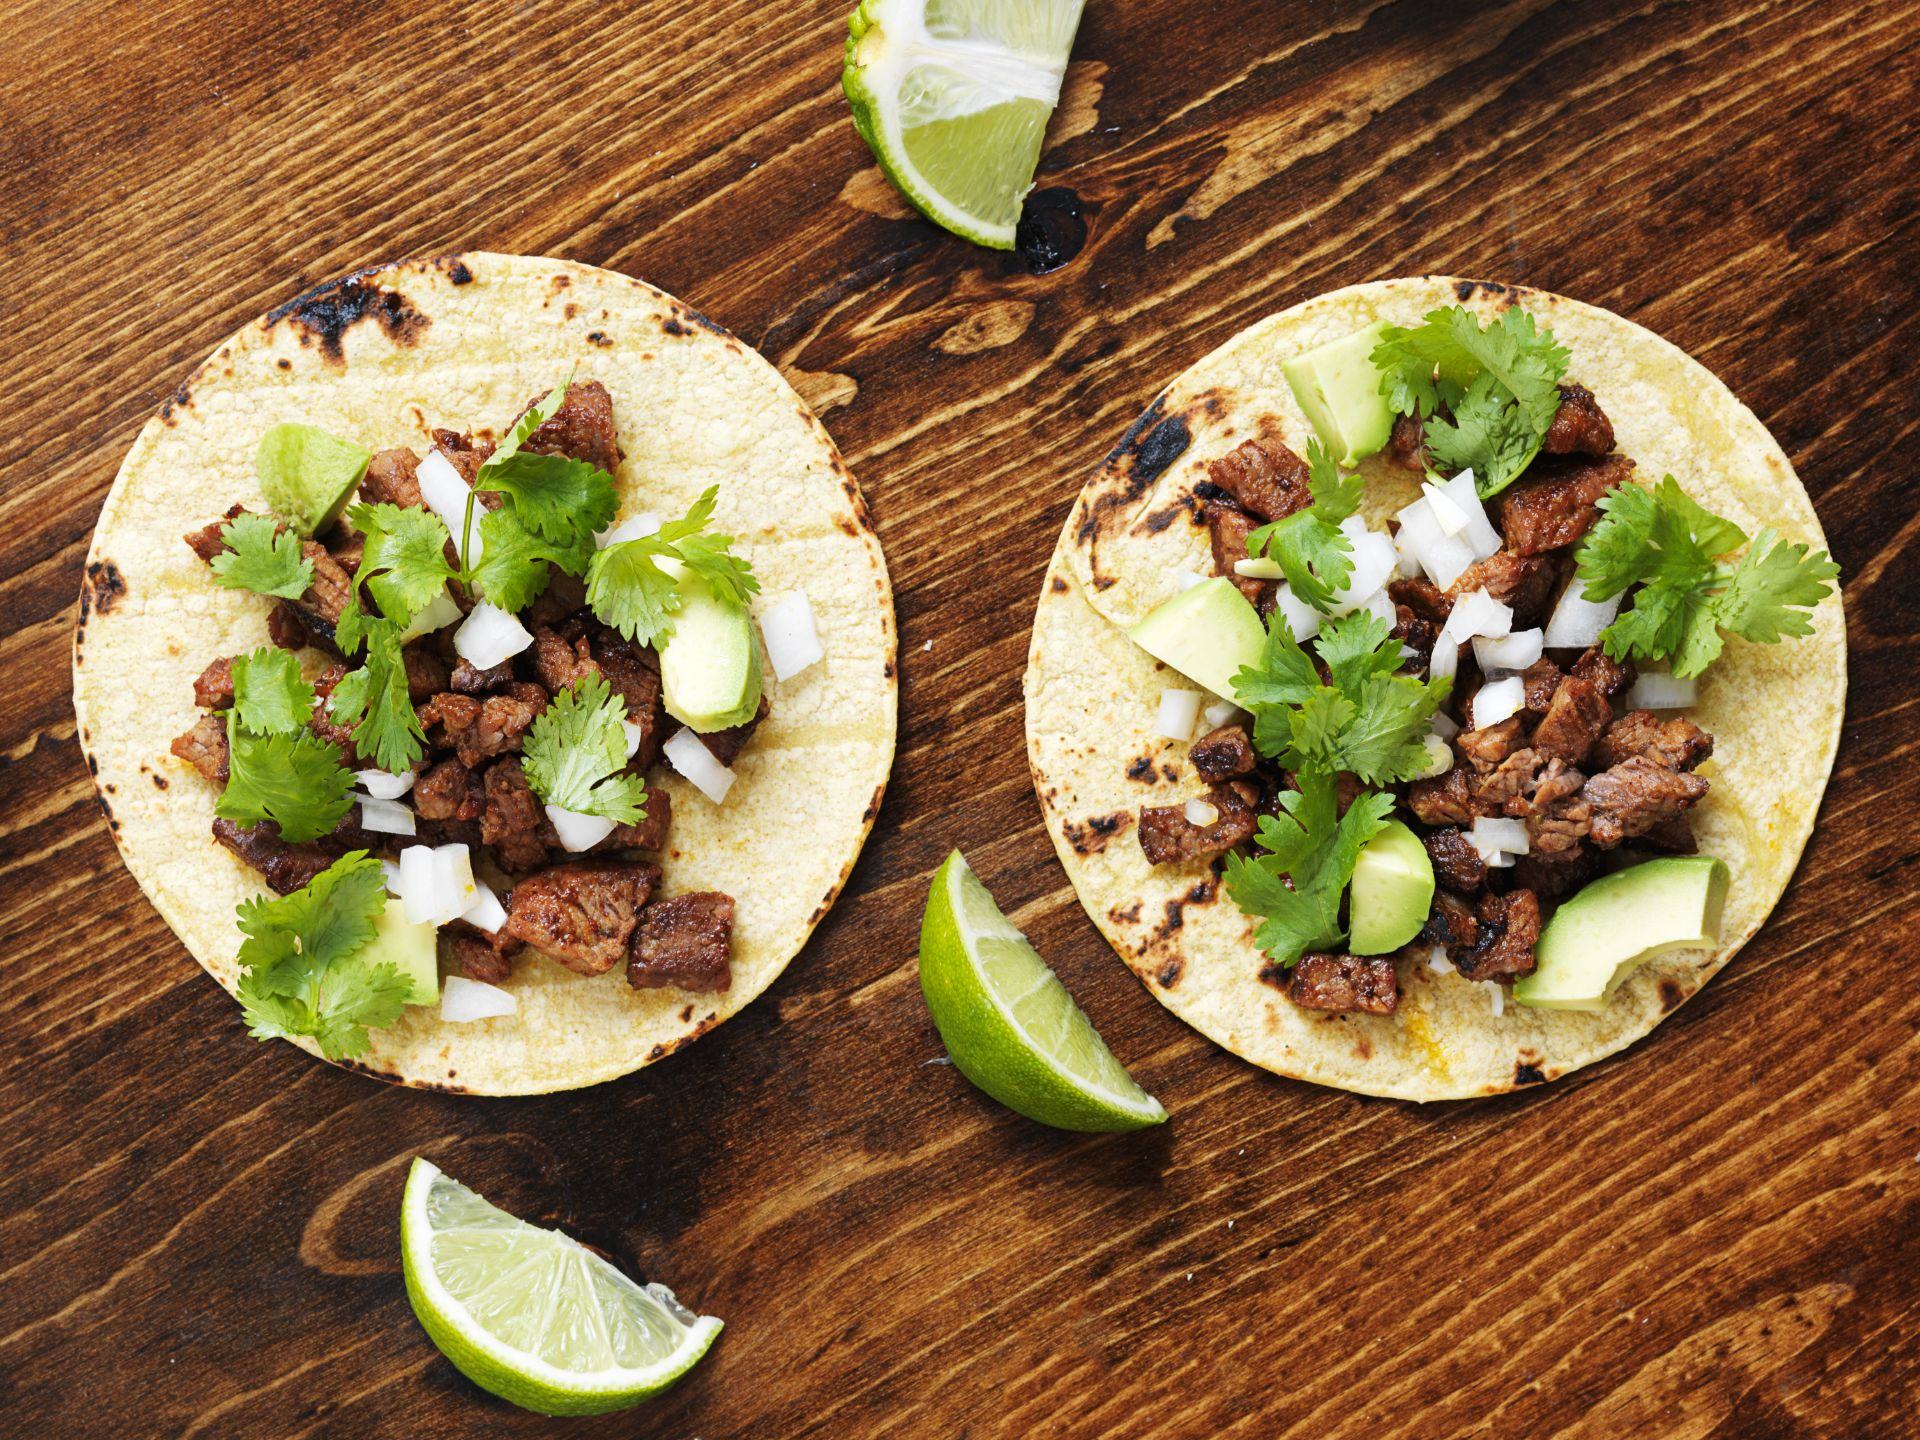 two steak street style tacos with white onions and cilantro in soft corn tortillas and lime wedges on the side